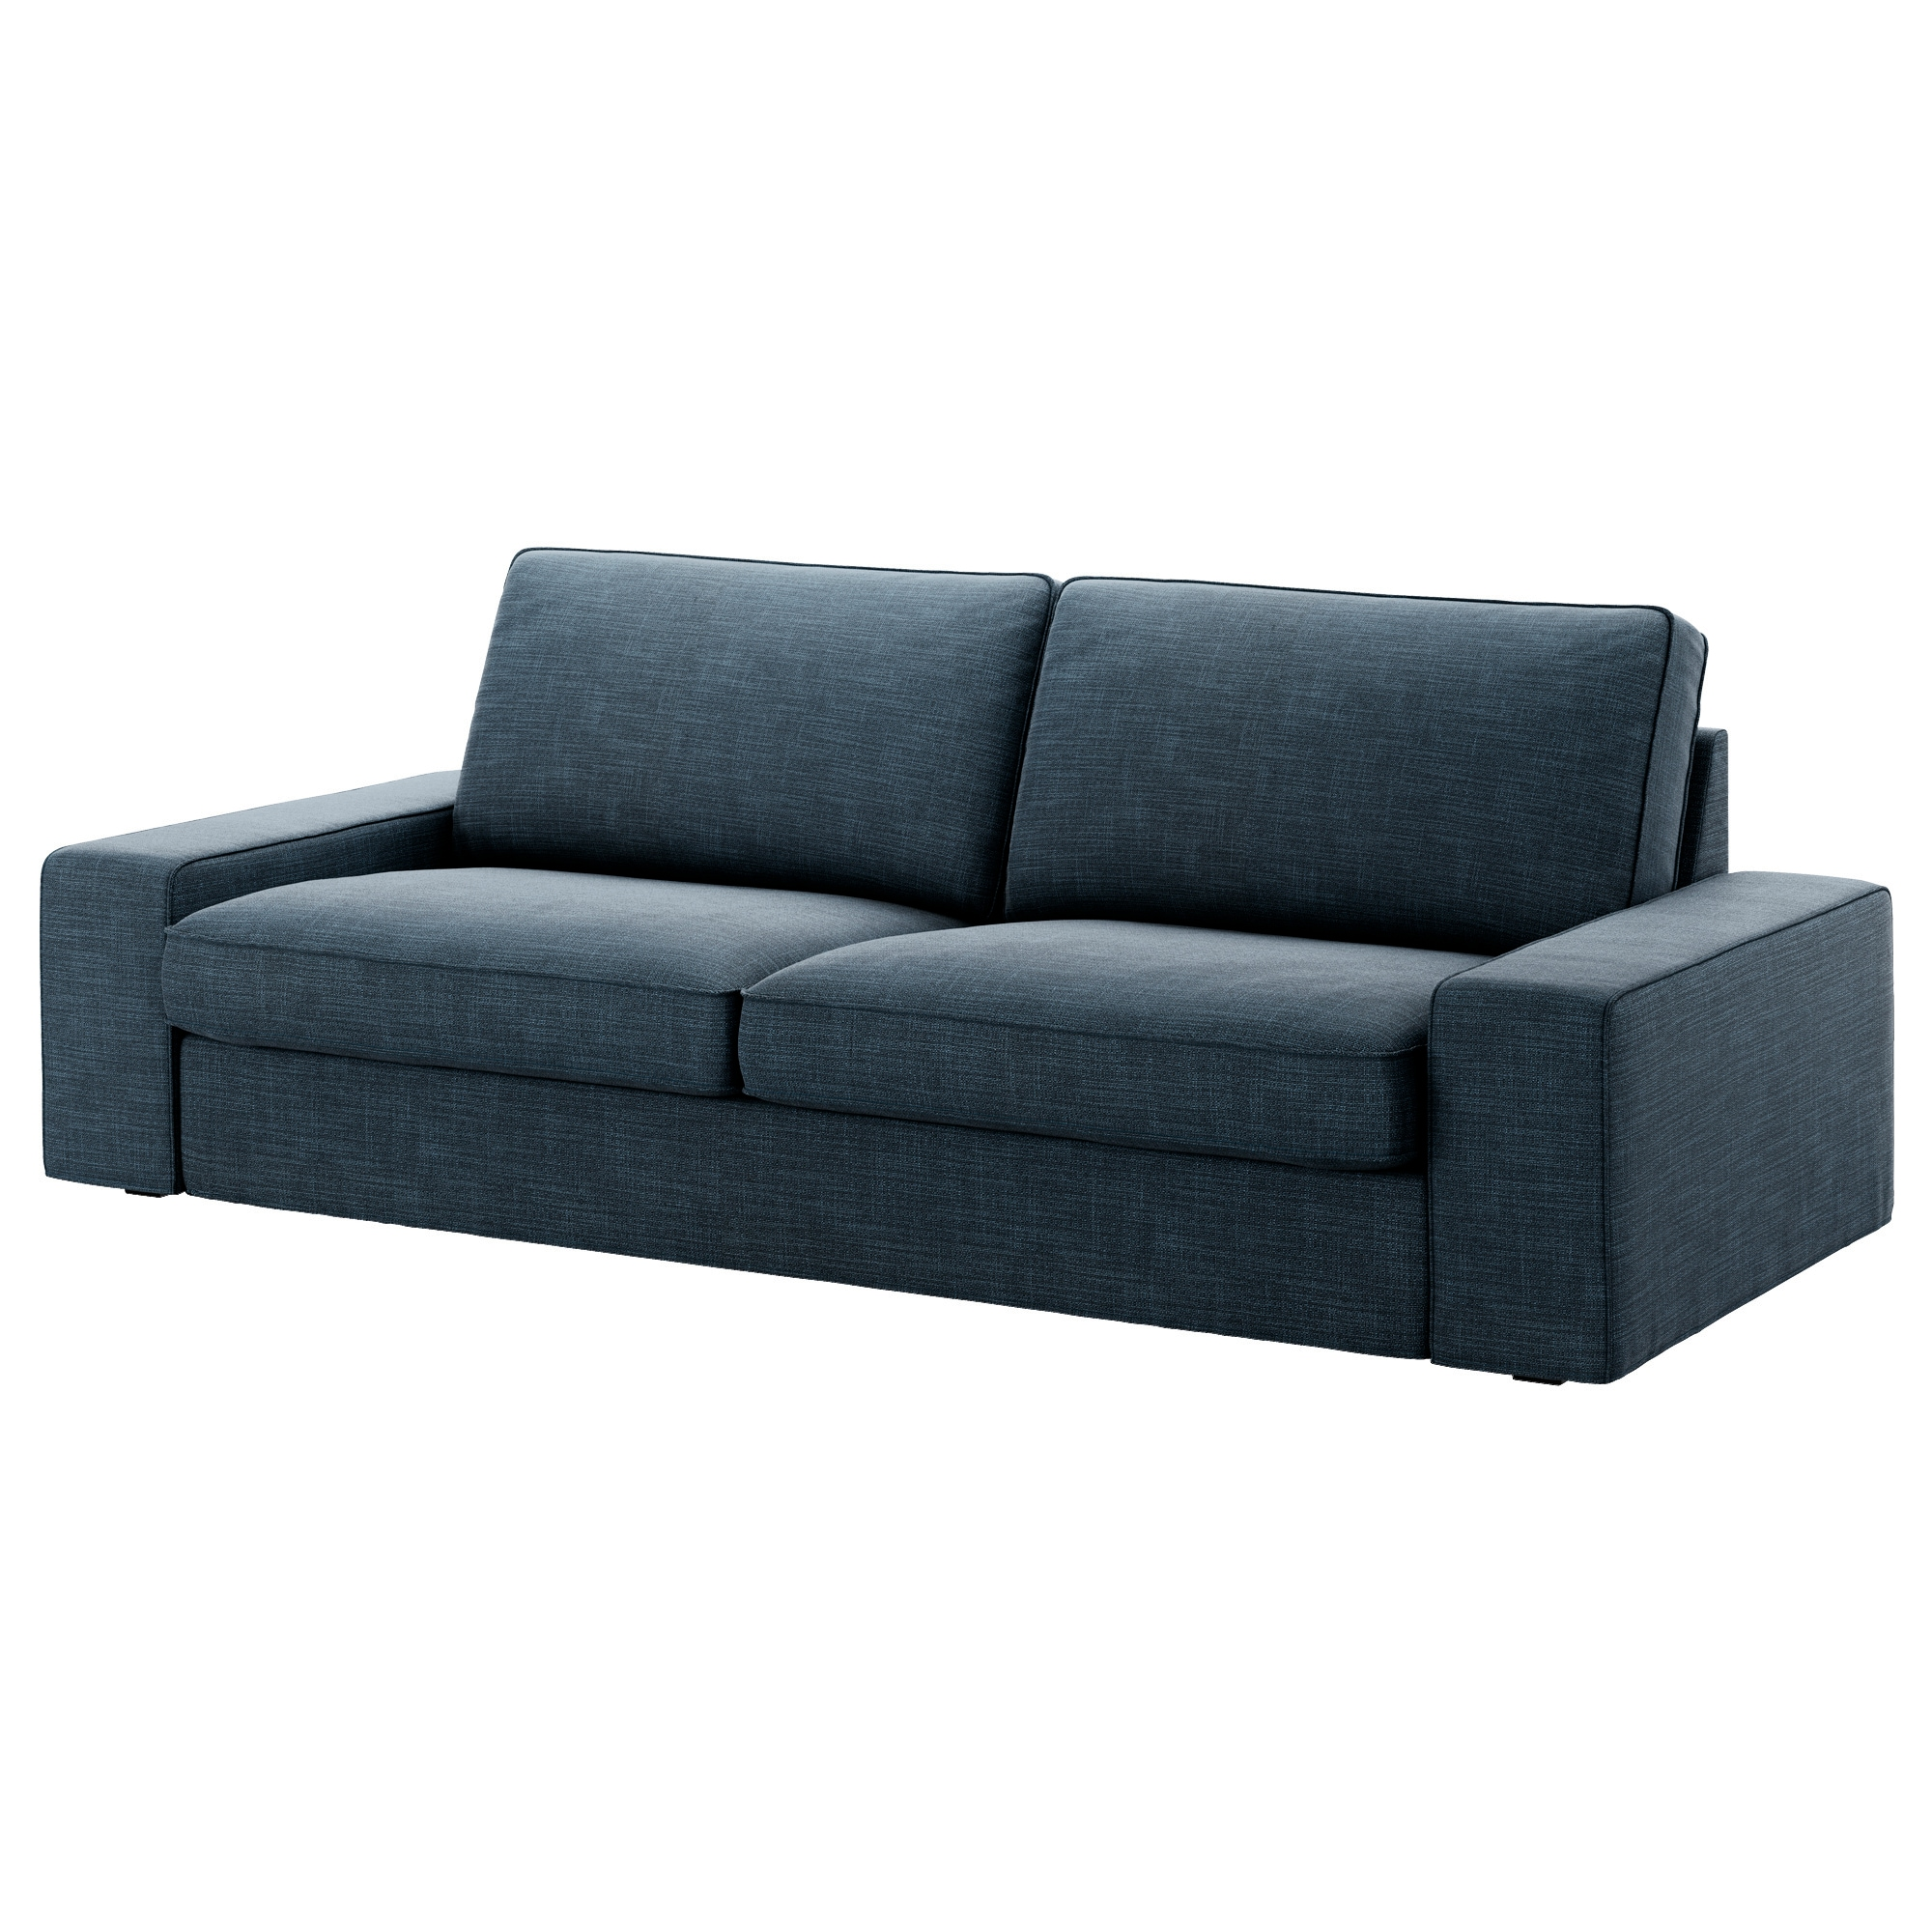 KIVIK Sofa Orrsta light gray IKEA